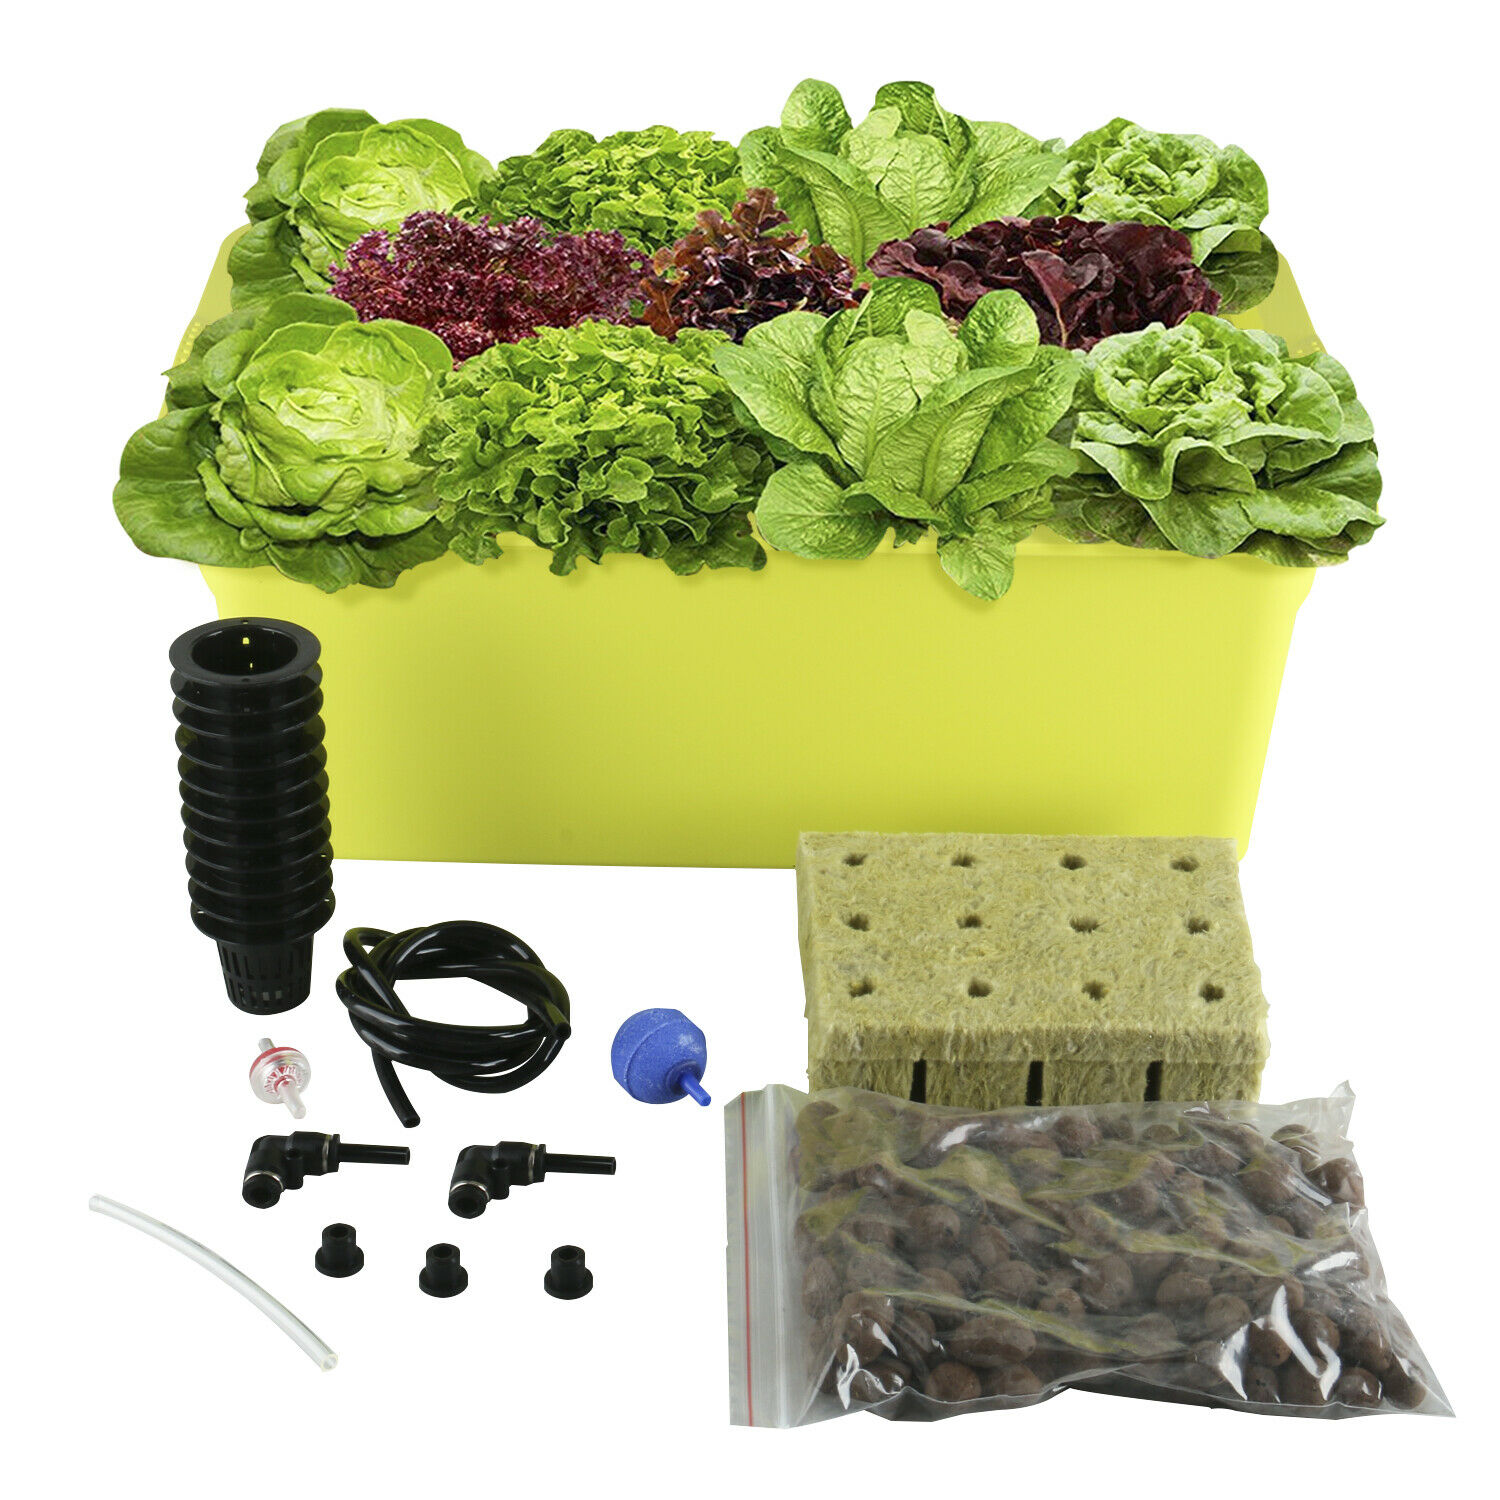 New! 11 Holes Plant Site Hydroponic System Grow Kit , Best Indoor Herb Garden 1